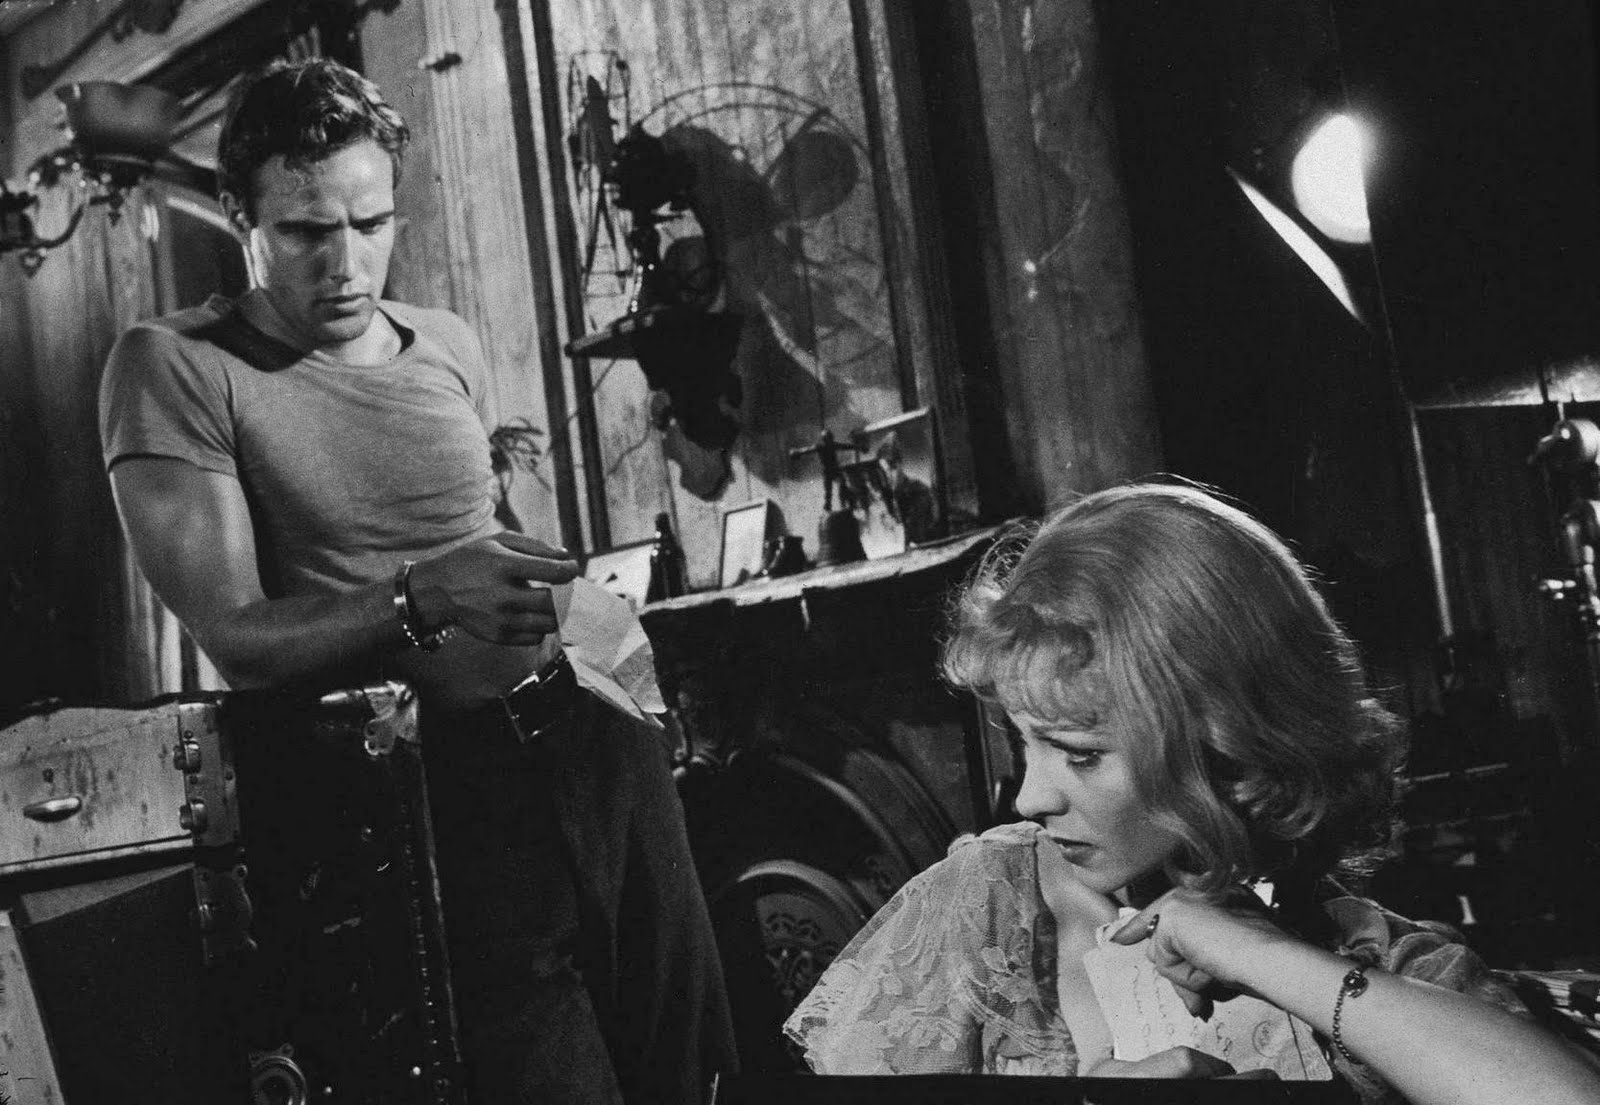 A Streetcar Named Desire film review